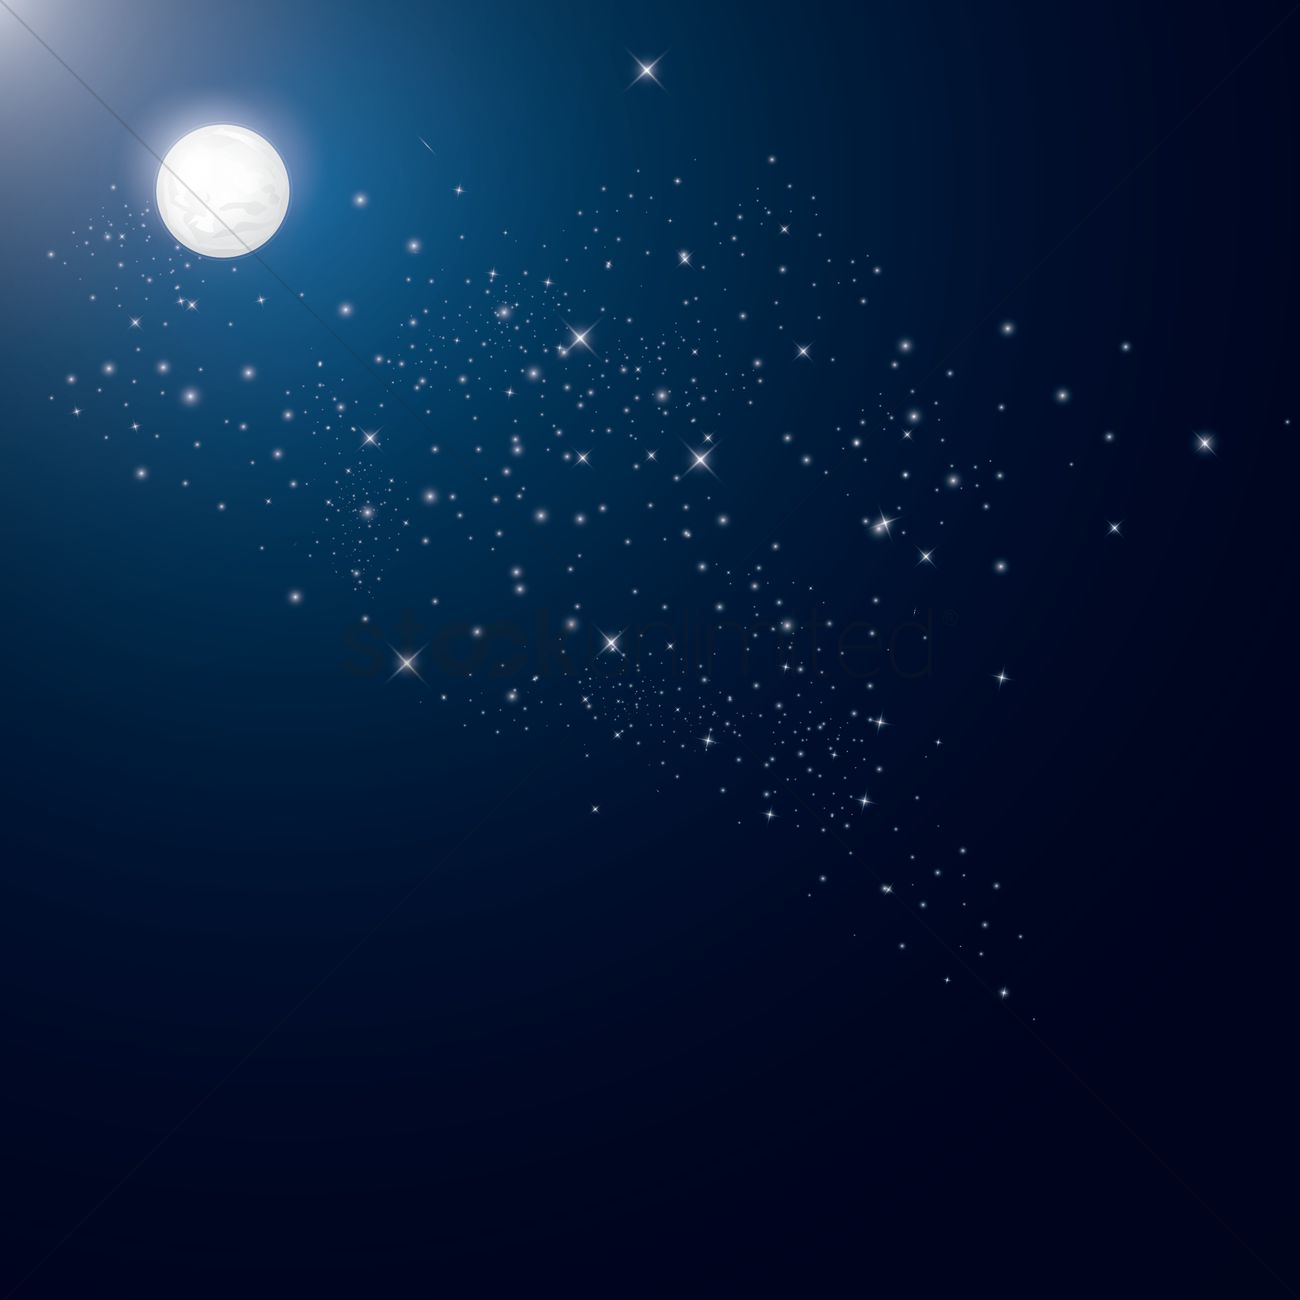 Full moon and stars background Vector Image - 1519164 ...